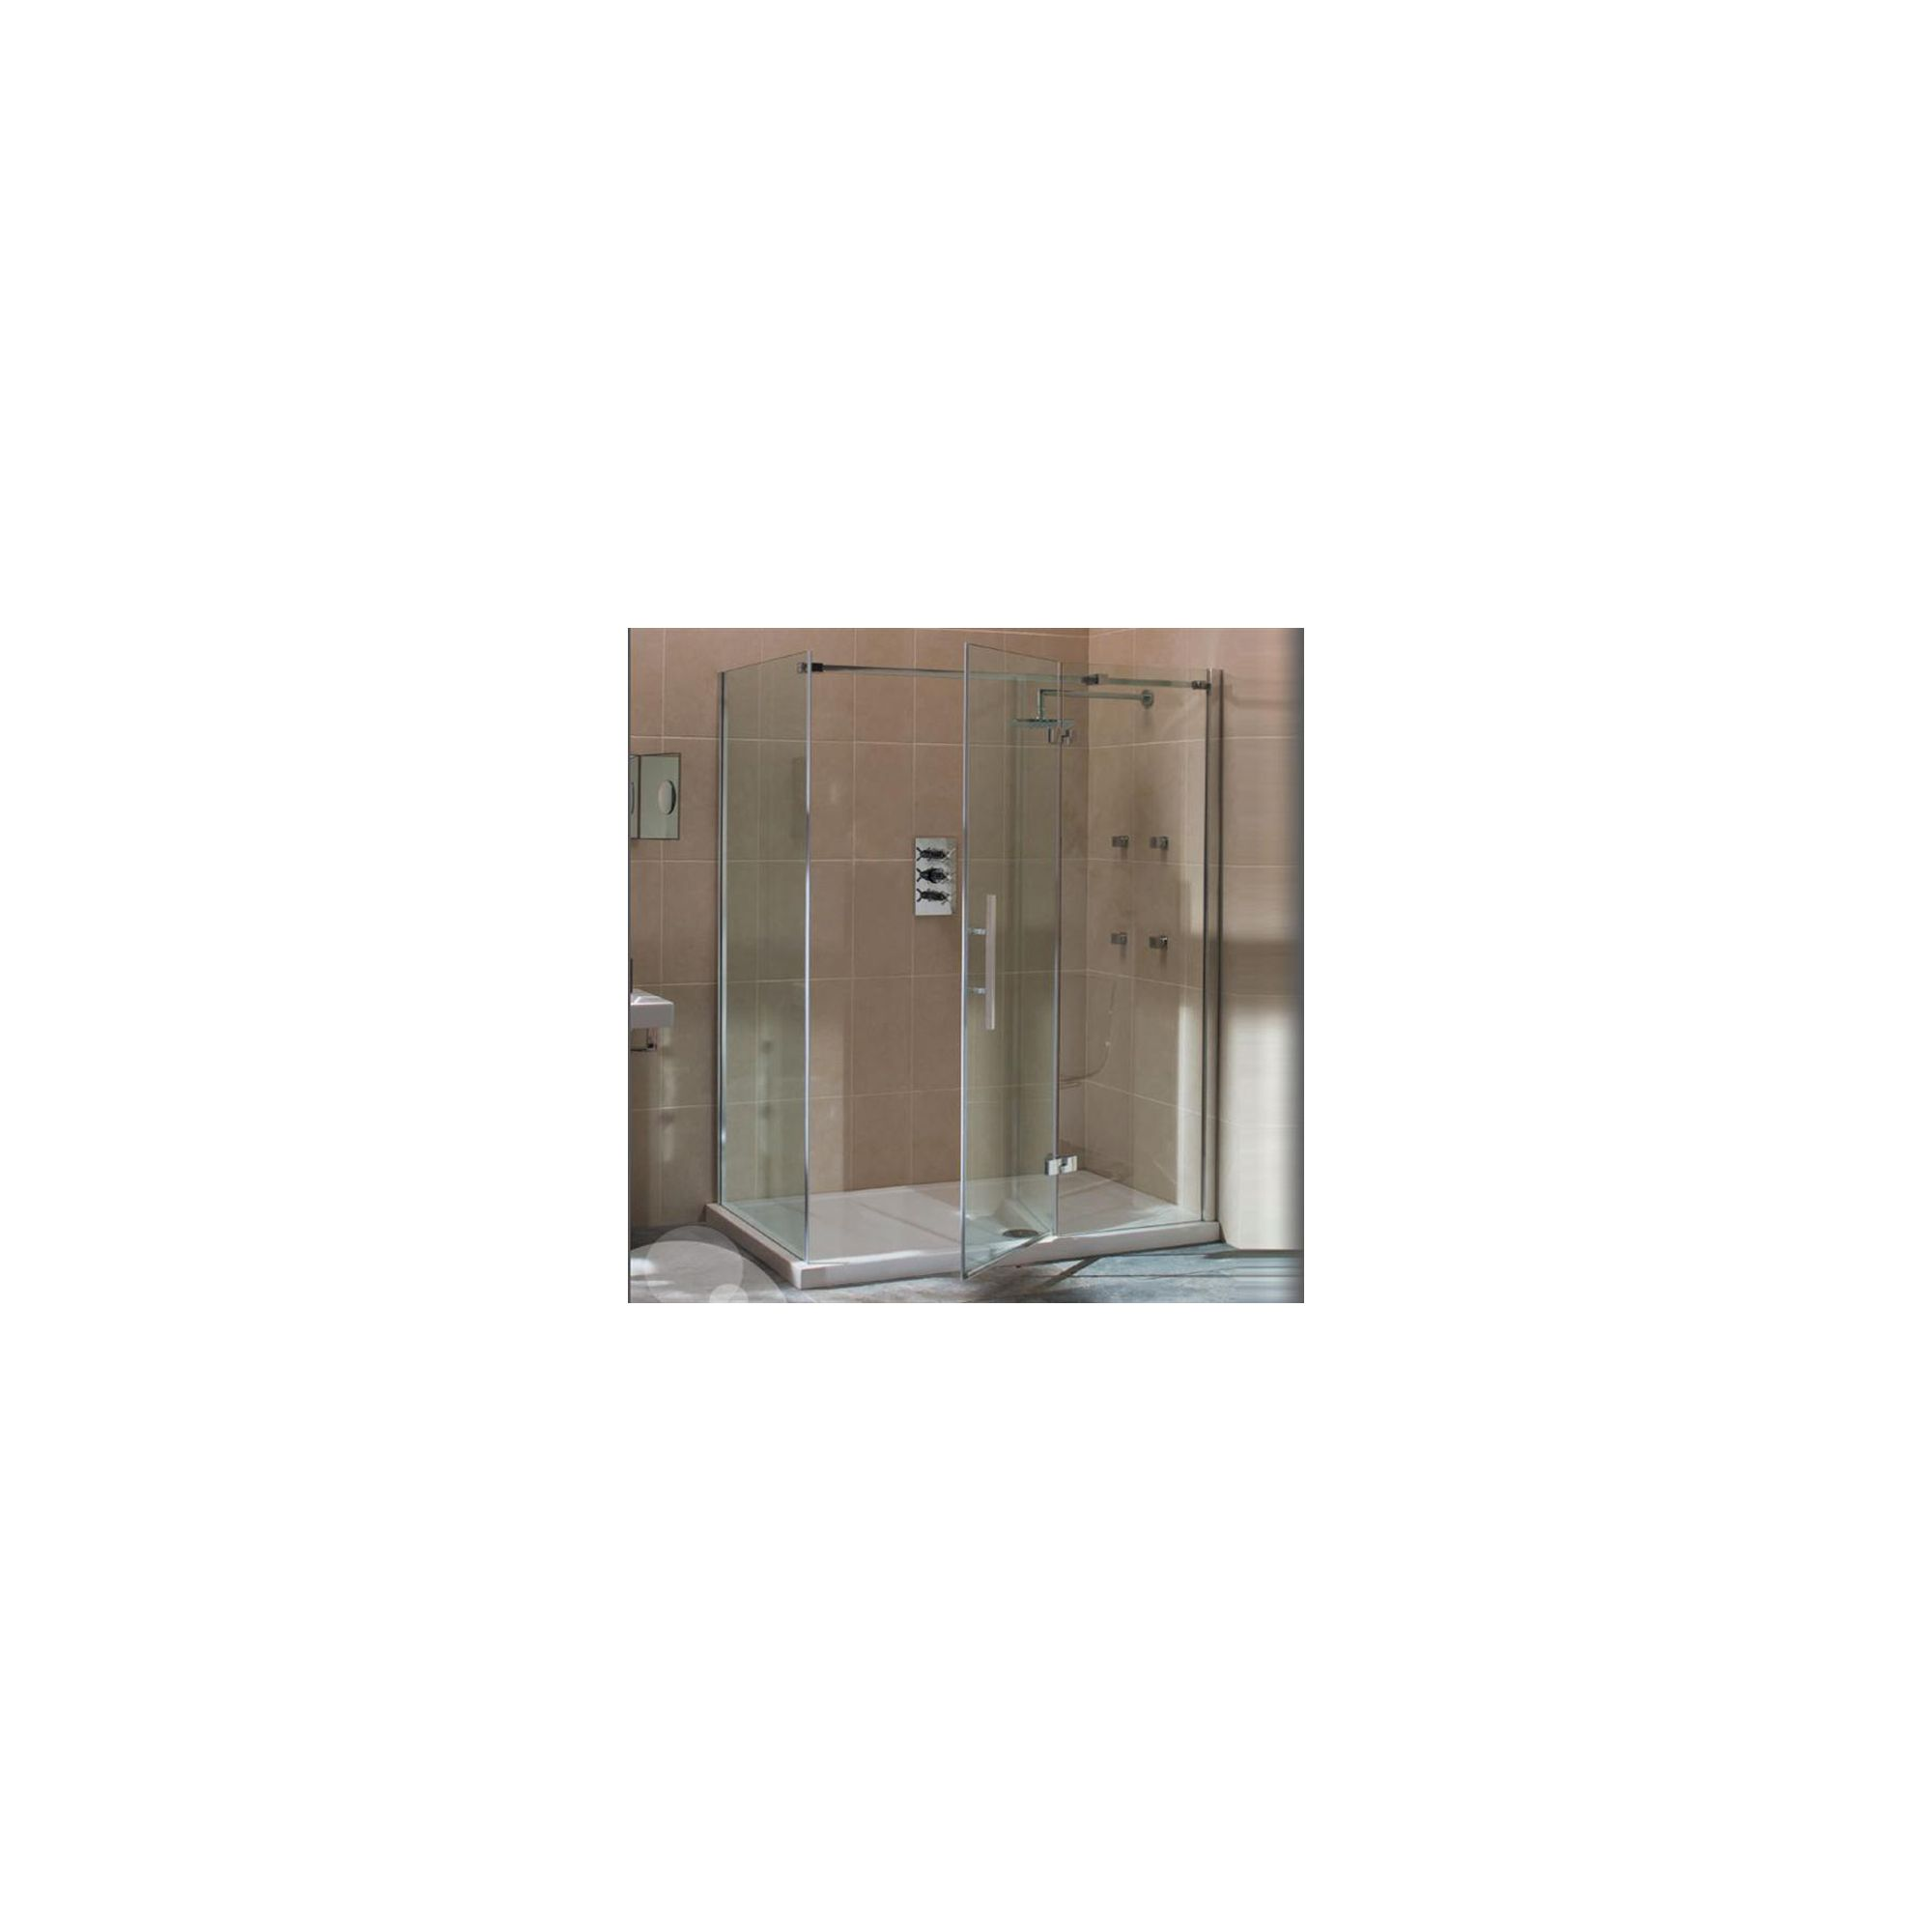 Merlyn Vivid Nine Frameless Hinged Shower Door and Inline Panel, 1700mm Wide, Right Handed, 8mm Glass at Tesco Direct